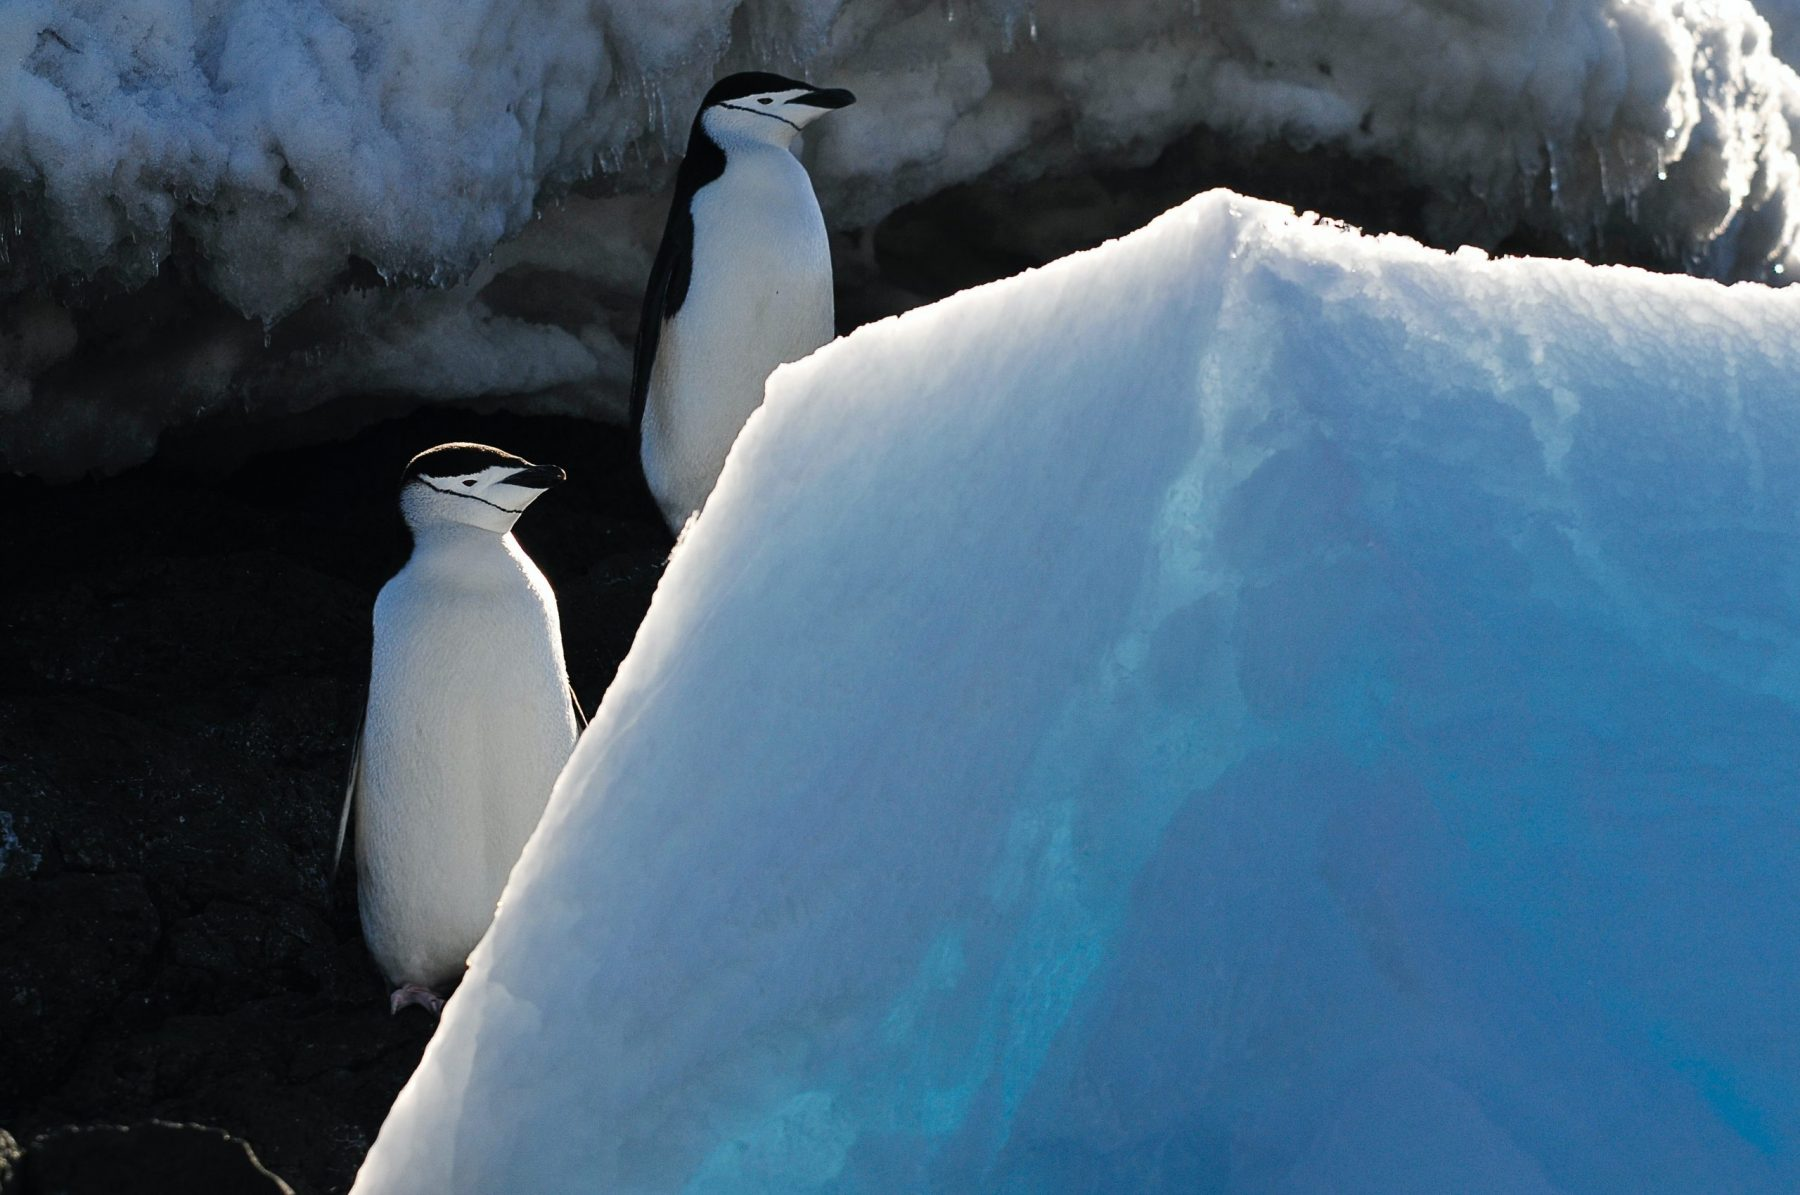 In an article about bizarre research papers, a photo of two penguins